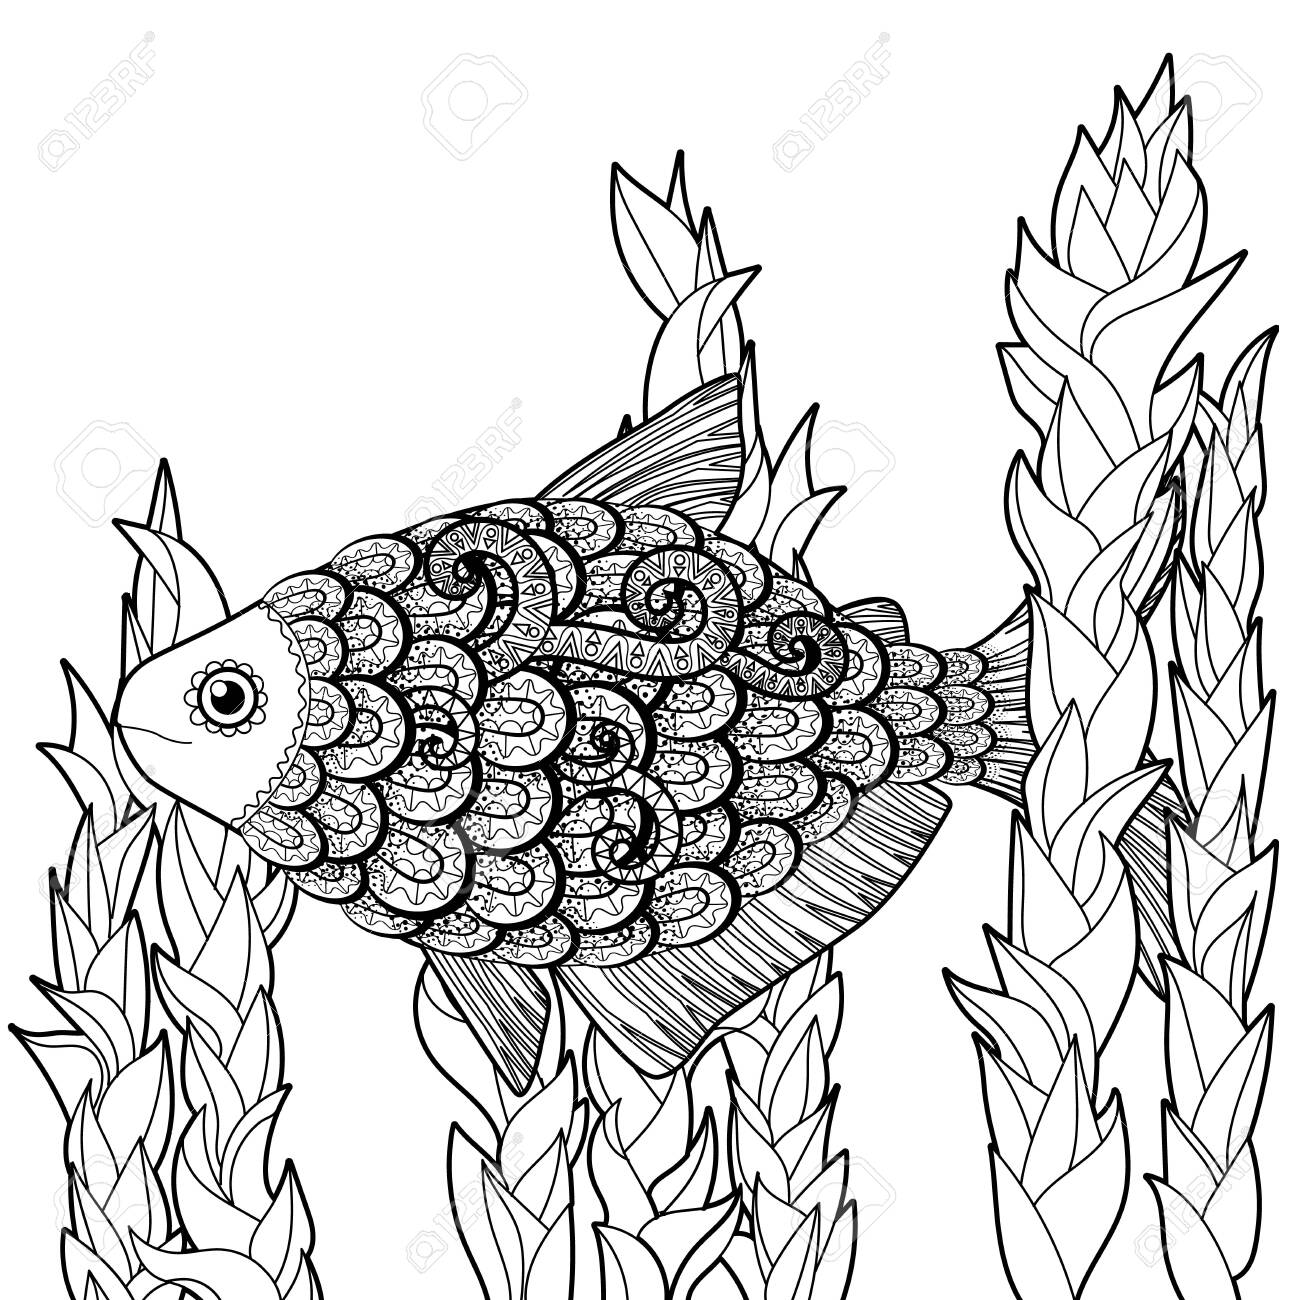 - Bass Fish With High Details. Adult Antistress Coloring Page